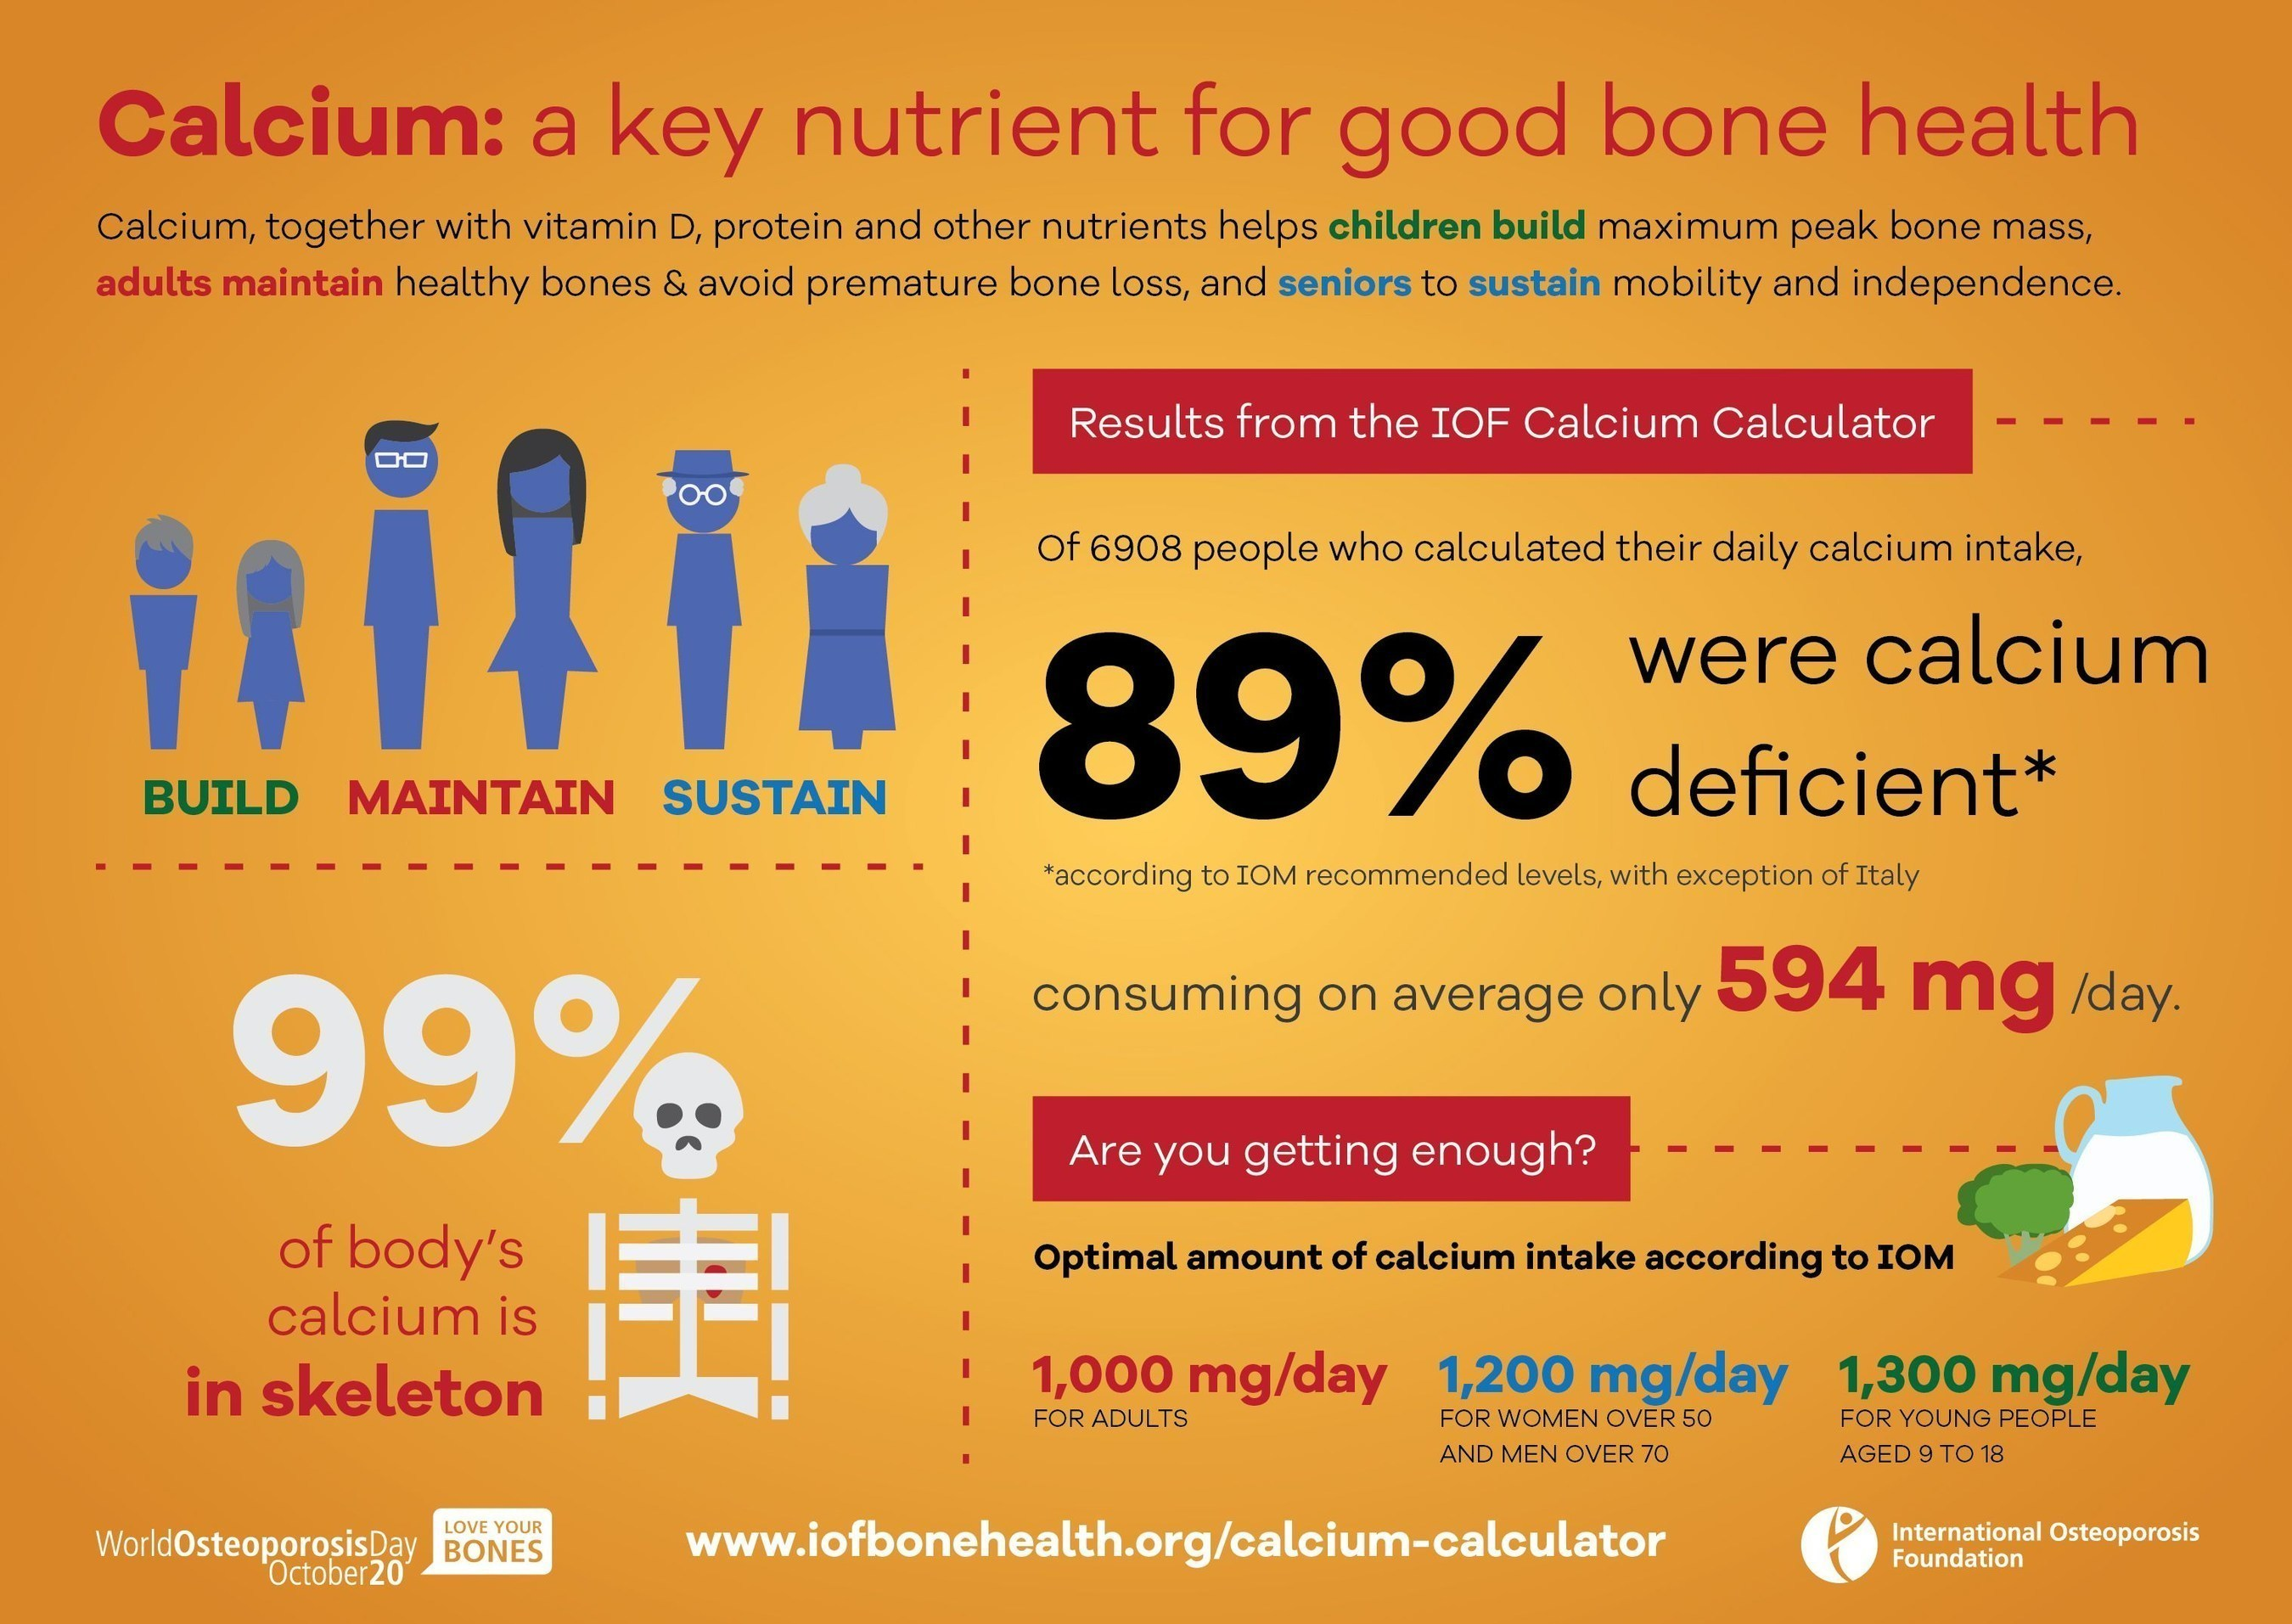 Calculator Shows That 89% of Users Aren't Getting Enough Calcium, a Key Nutrient for Good Bone